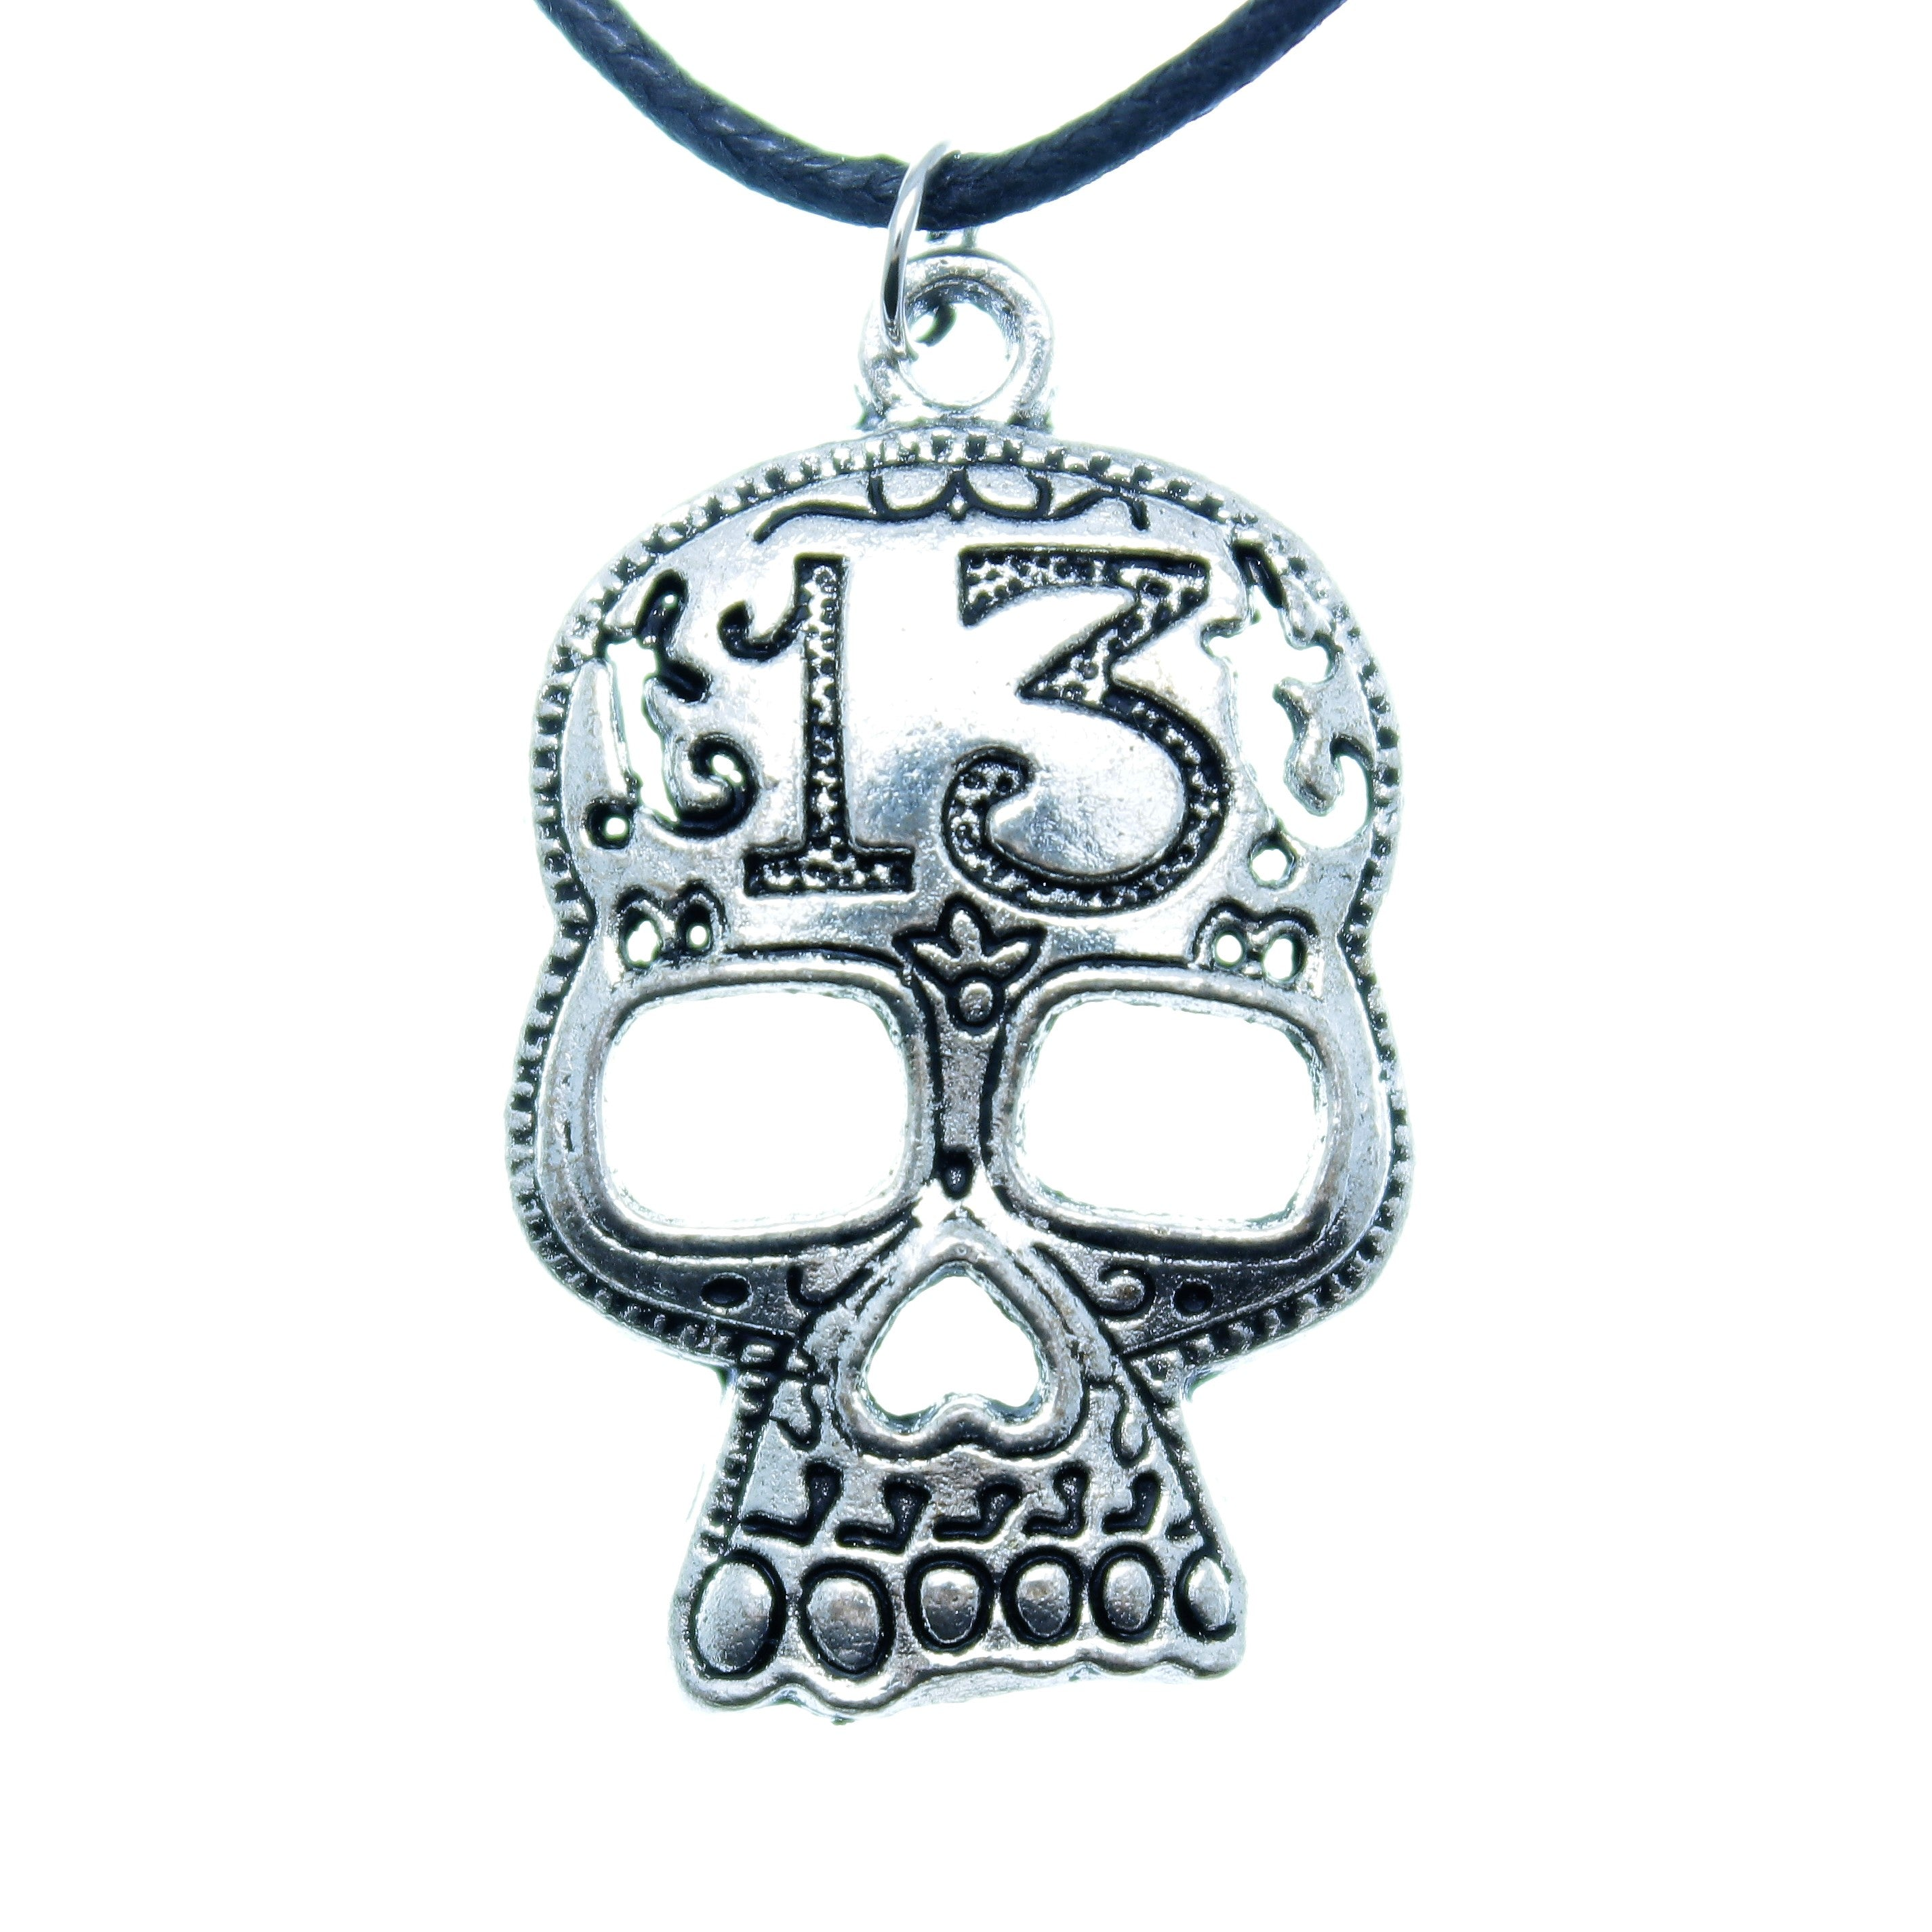 Silver Plated Peace Charm Pendant Choker Necklace with Black Cord